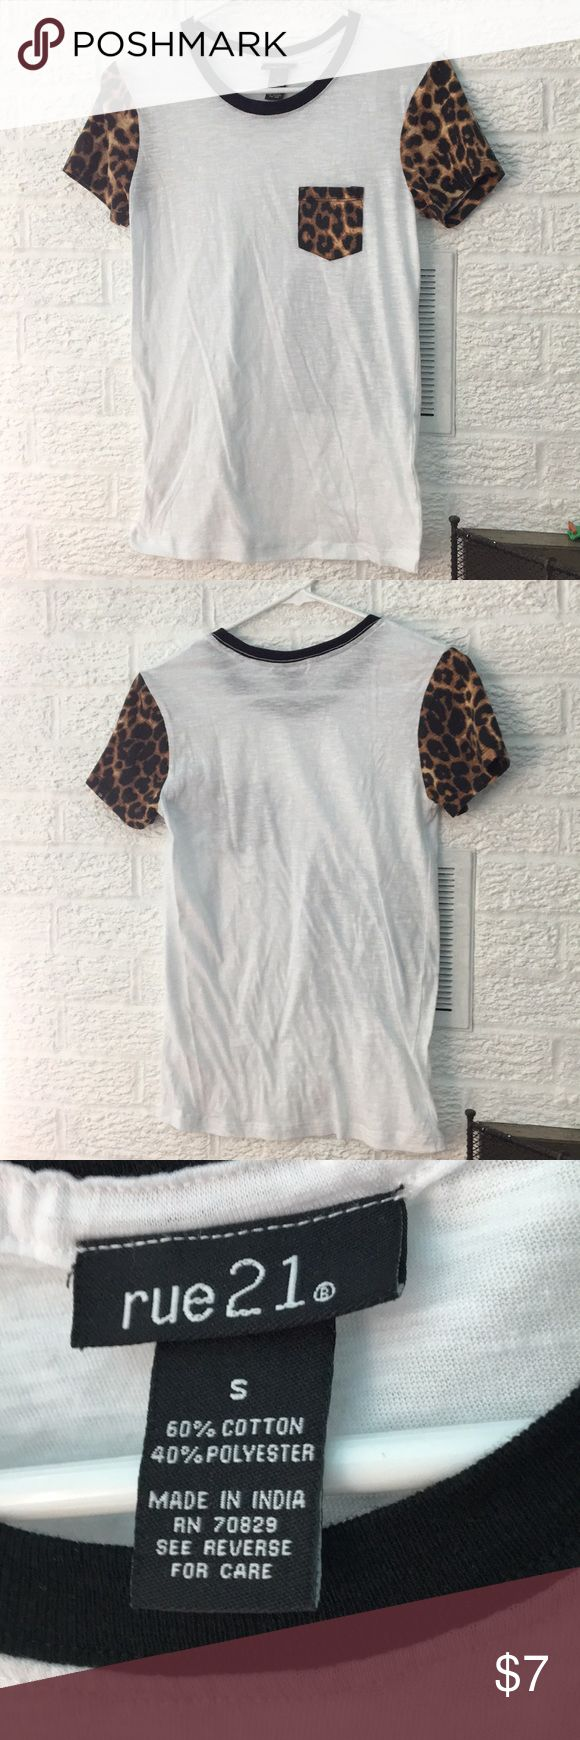 Rue 21 animal print tee Leopard print tee shirt with short sleeves. Great condition. Rue 21 Tops Tees - Short Sleeve